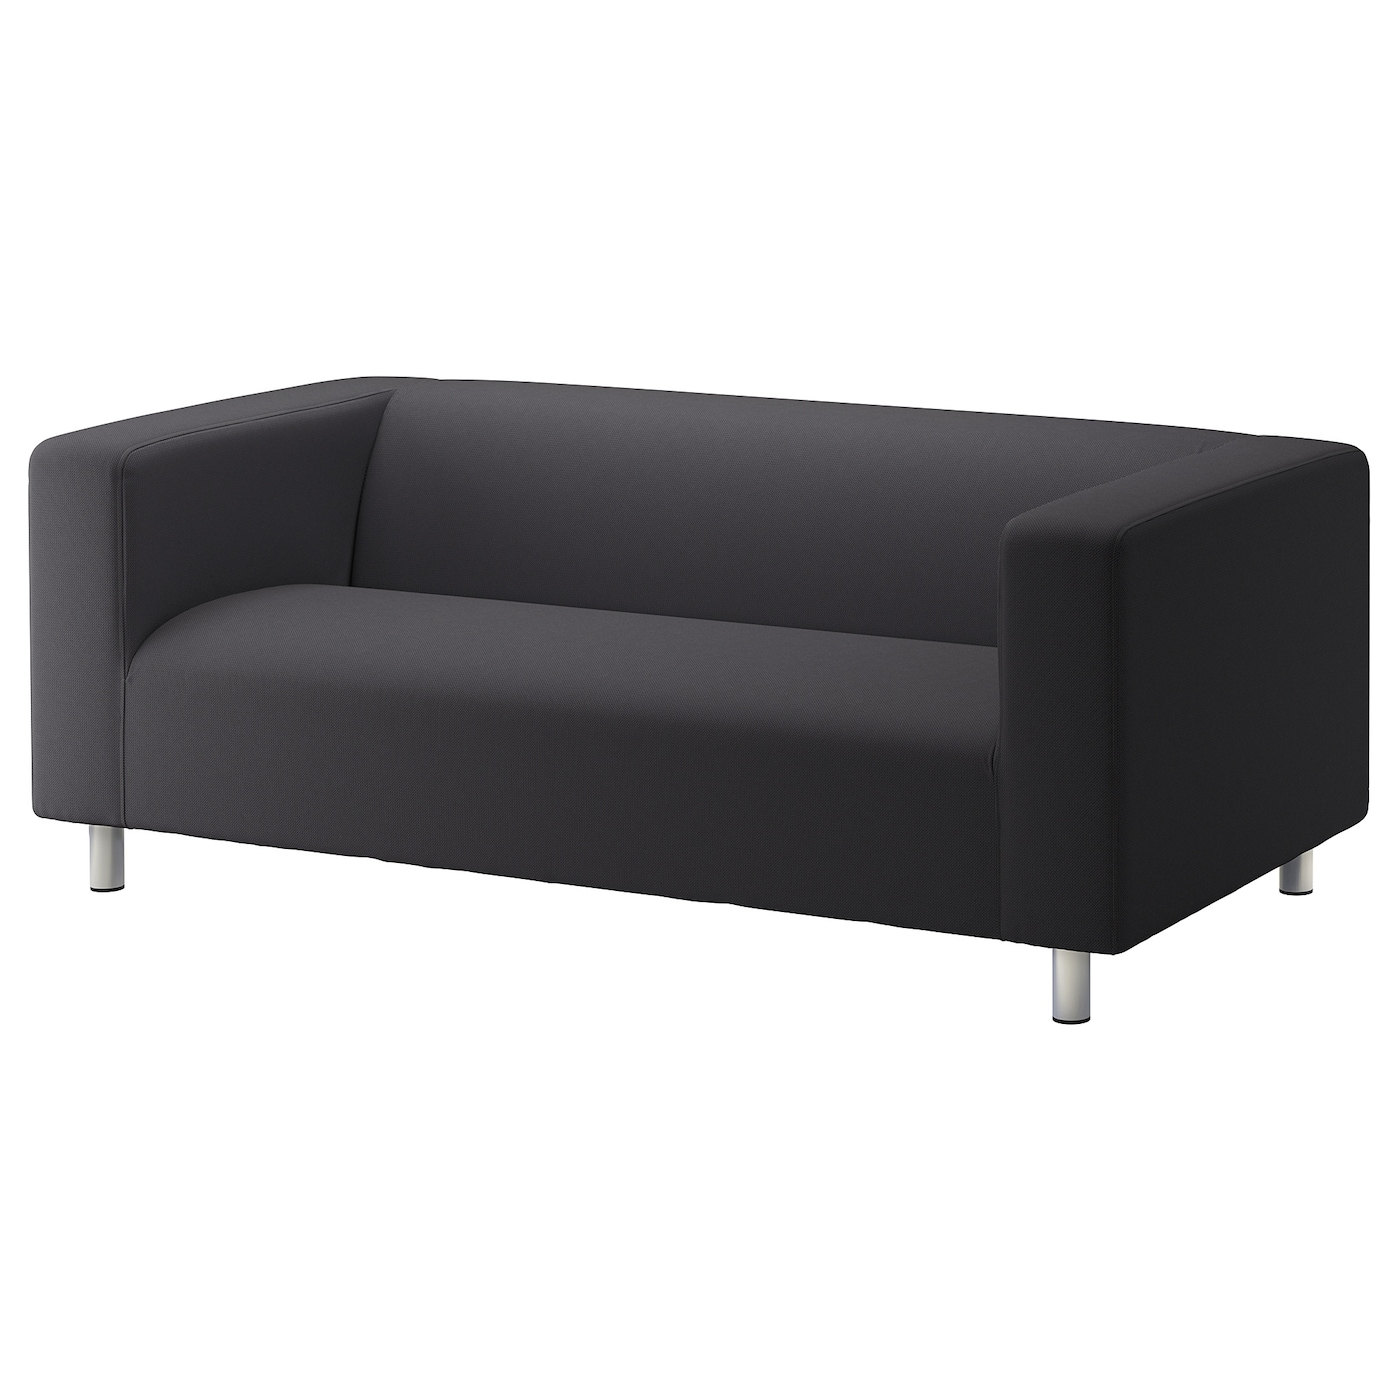 Merveilleux IKEA KLIPPAN 2 Seat Sofa The Cover Is Easy To Keep Clean Since It Is